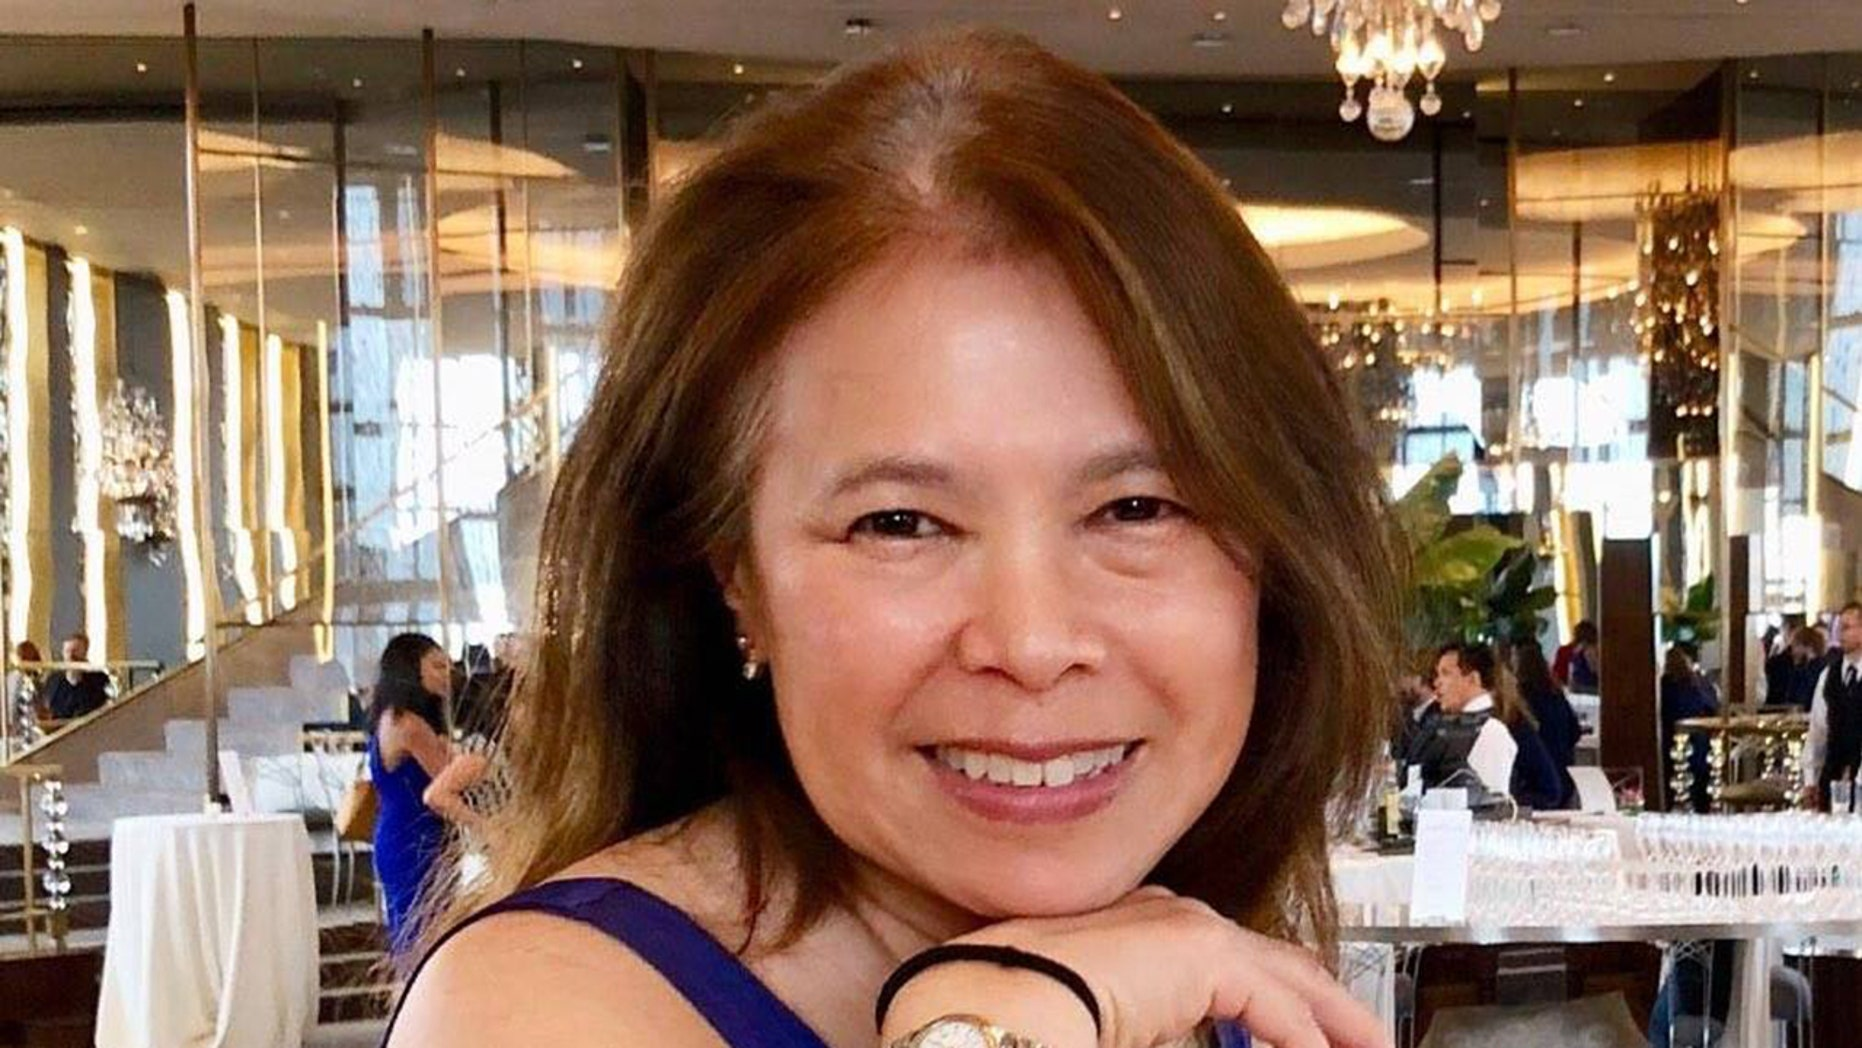 Paula Chin, who was reported missing on Monday, has been found dead in a garbage can at her New Jersey home. Her son is accused of killing her.